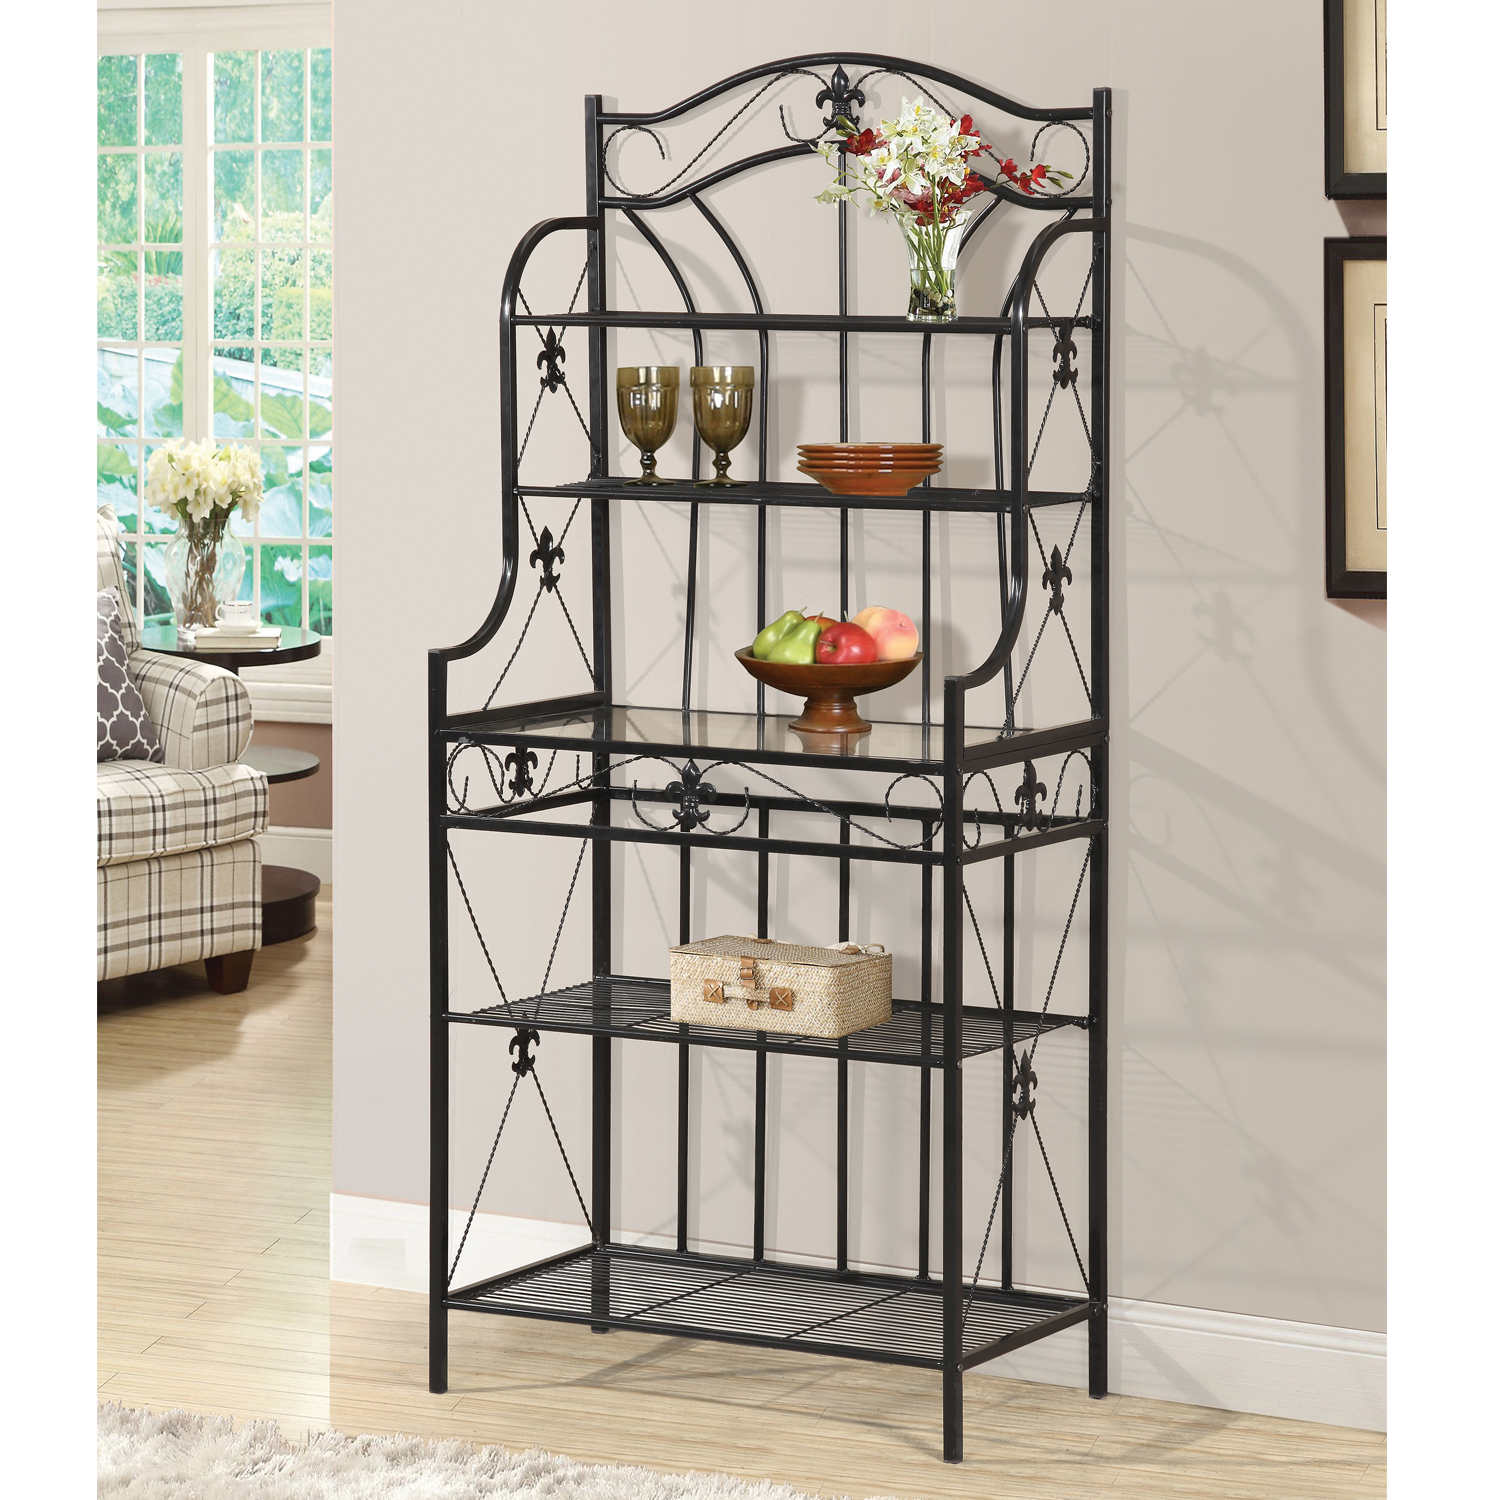 Celine Black Metal 5 Shelf Baker's Rack